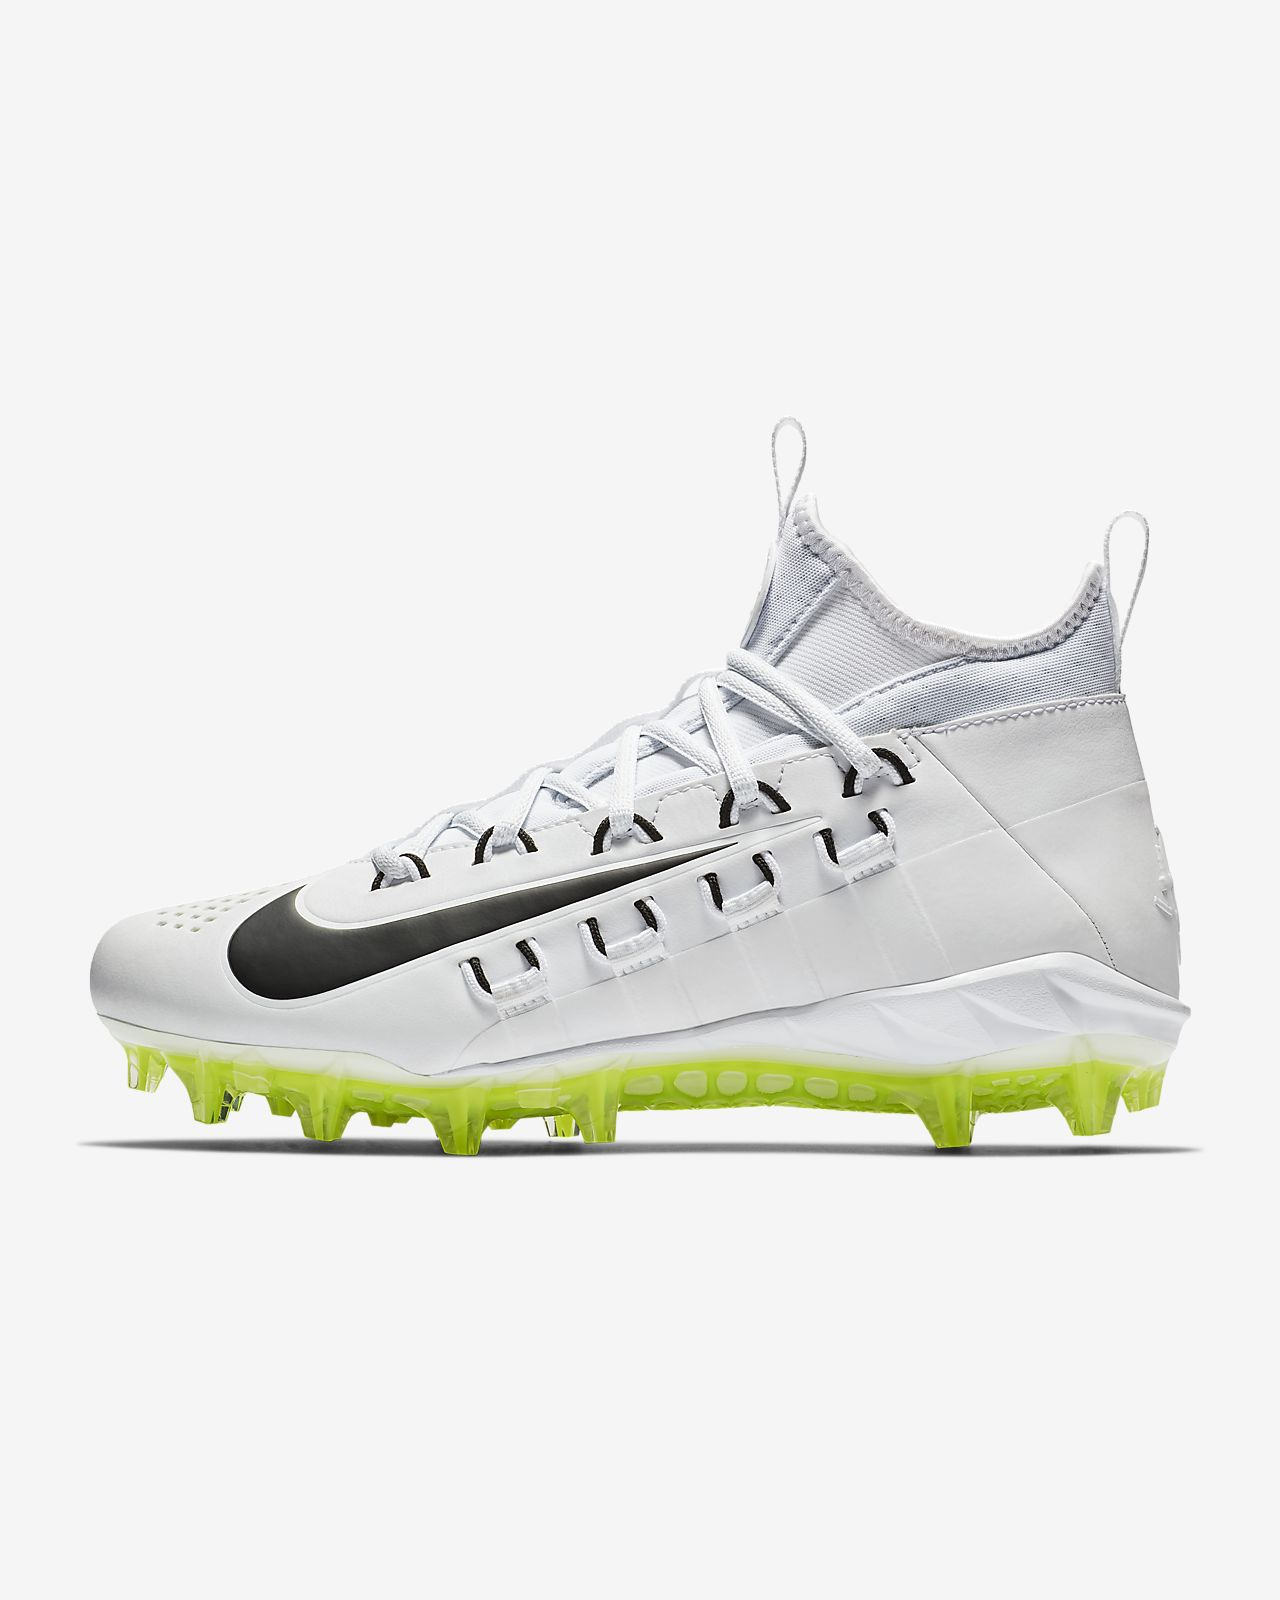 newest 57a57 a1067 ... Nike Alpha Huarache 6 Elite LAX Lacrosse Cleat